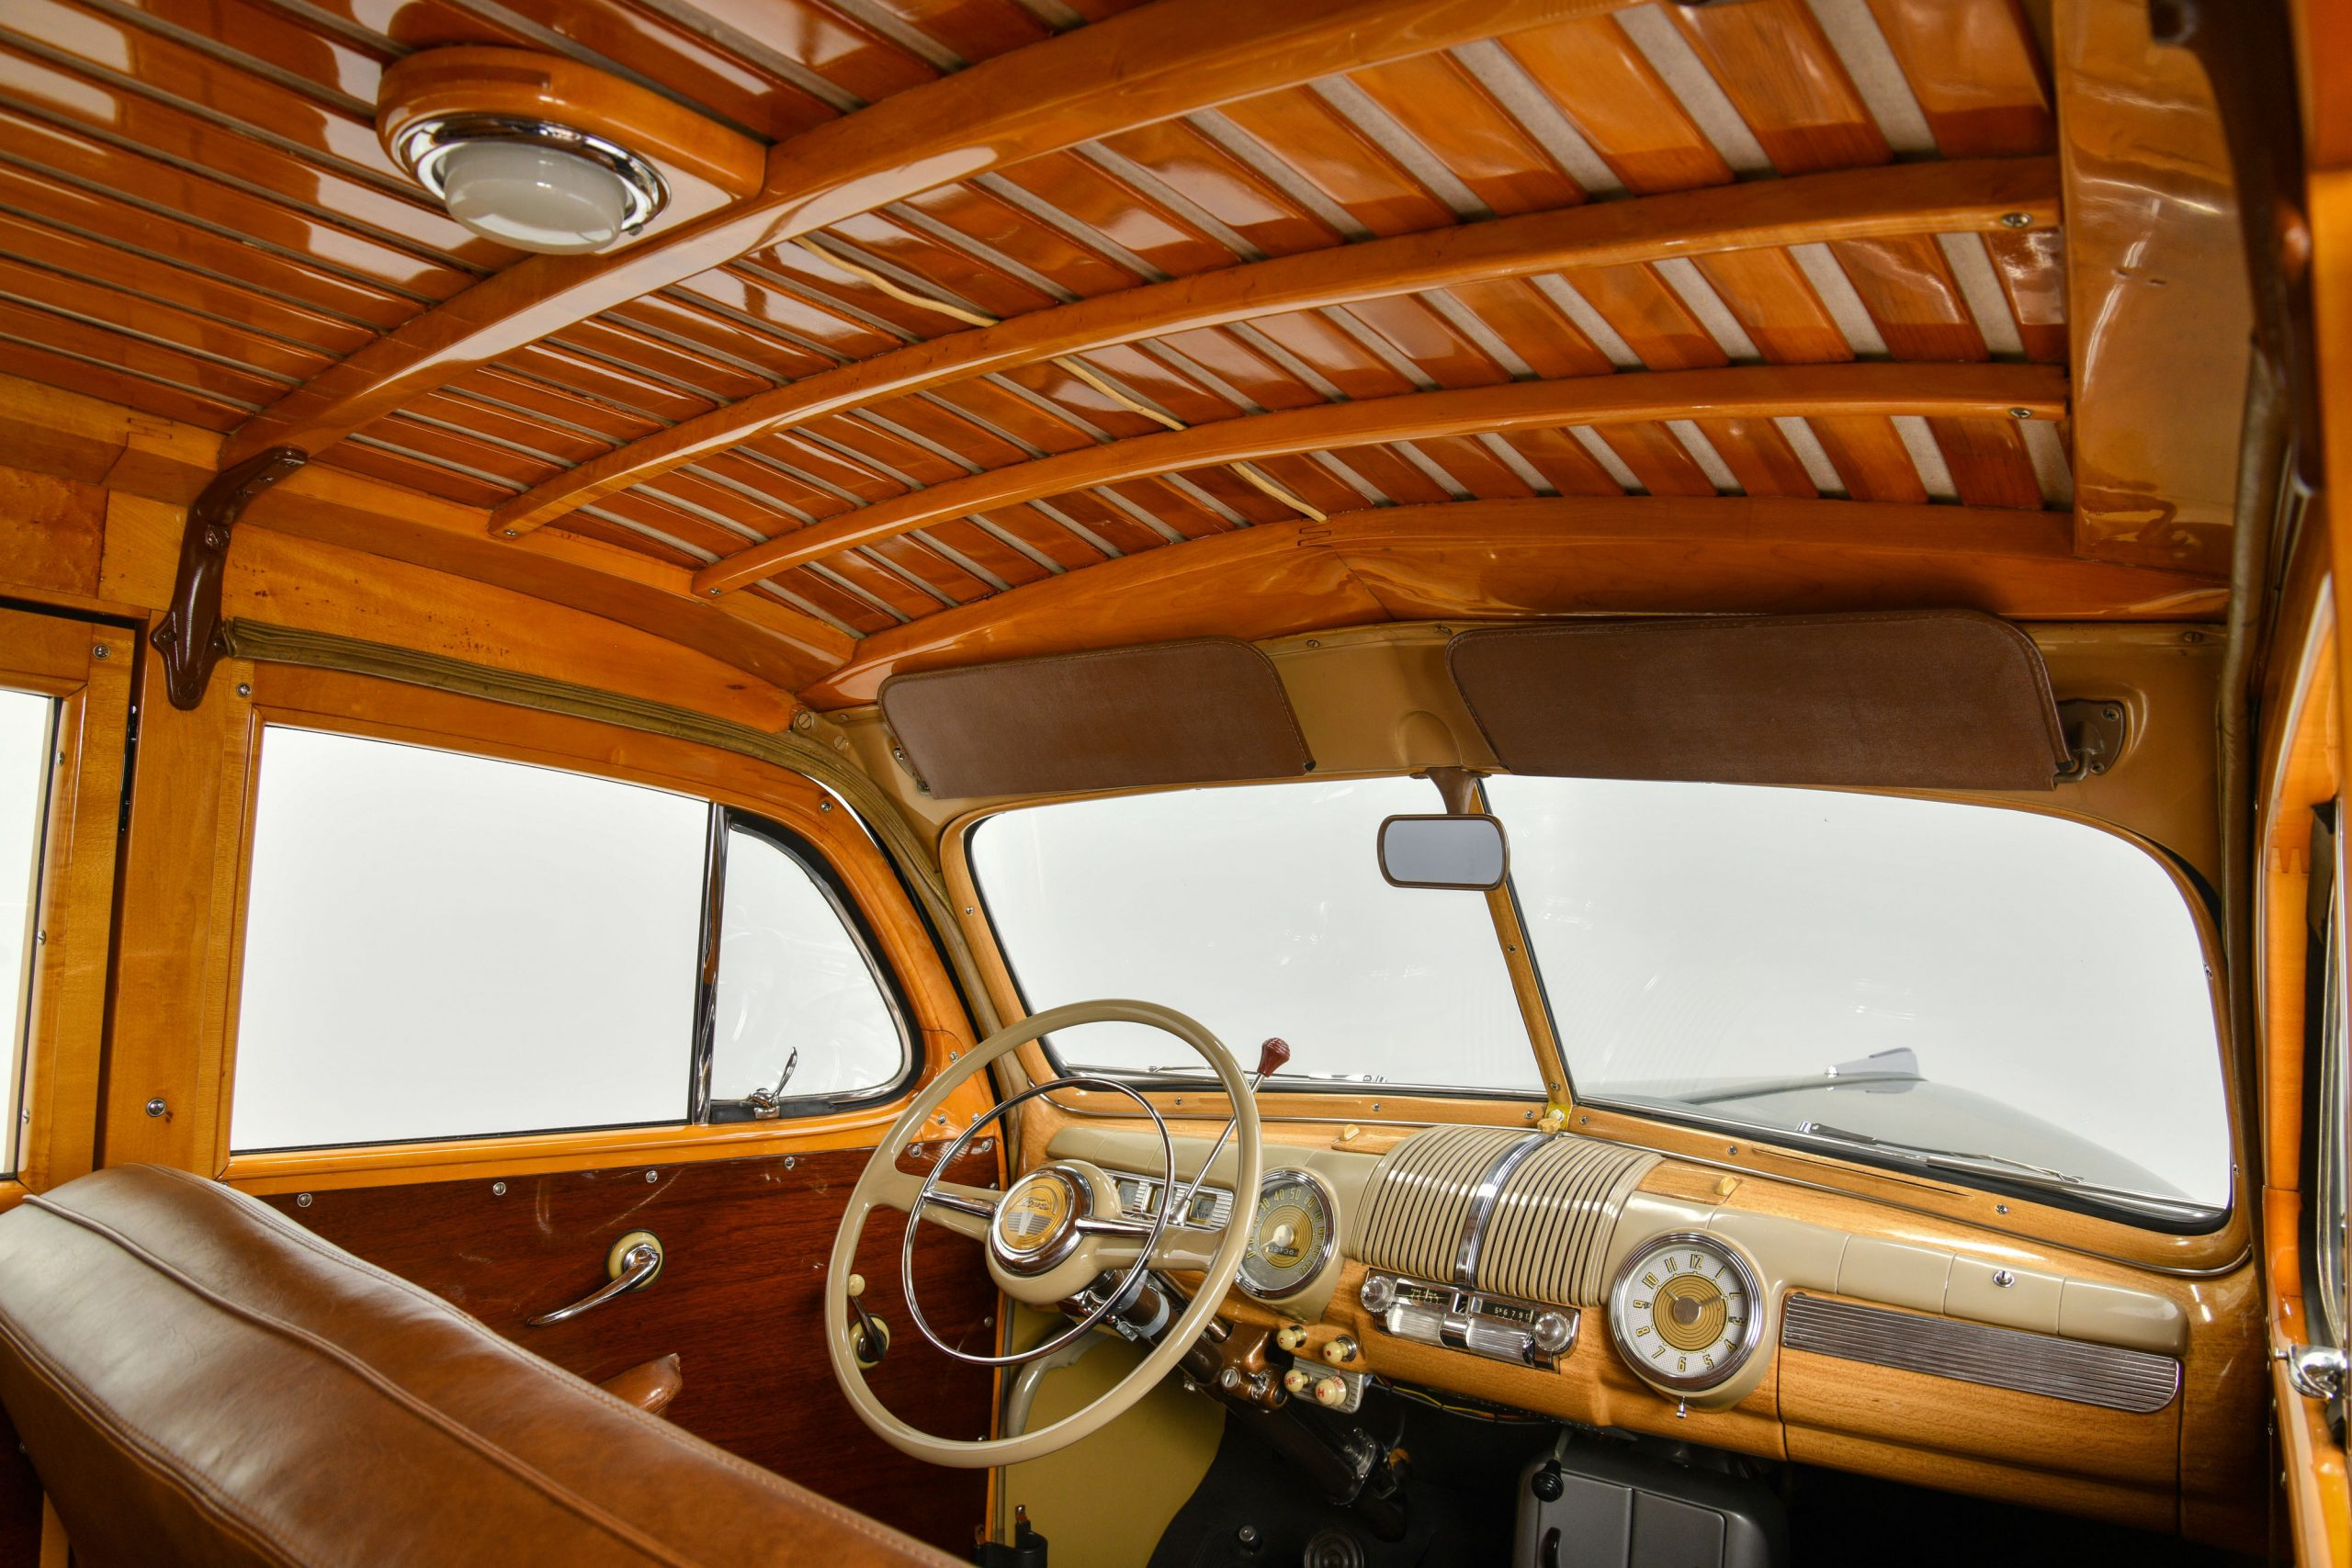 1947 FORD SUPER DELUXE CUSTOM interior roof wood work